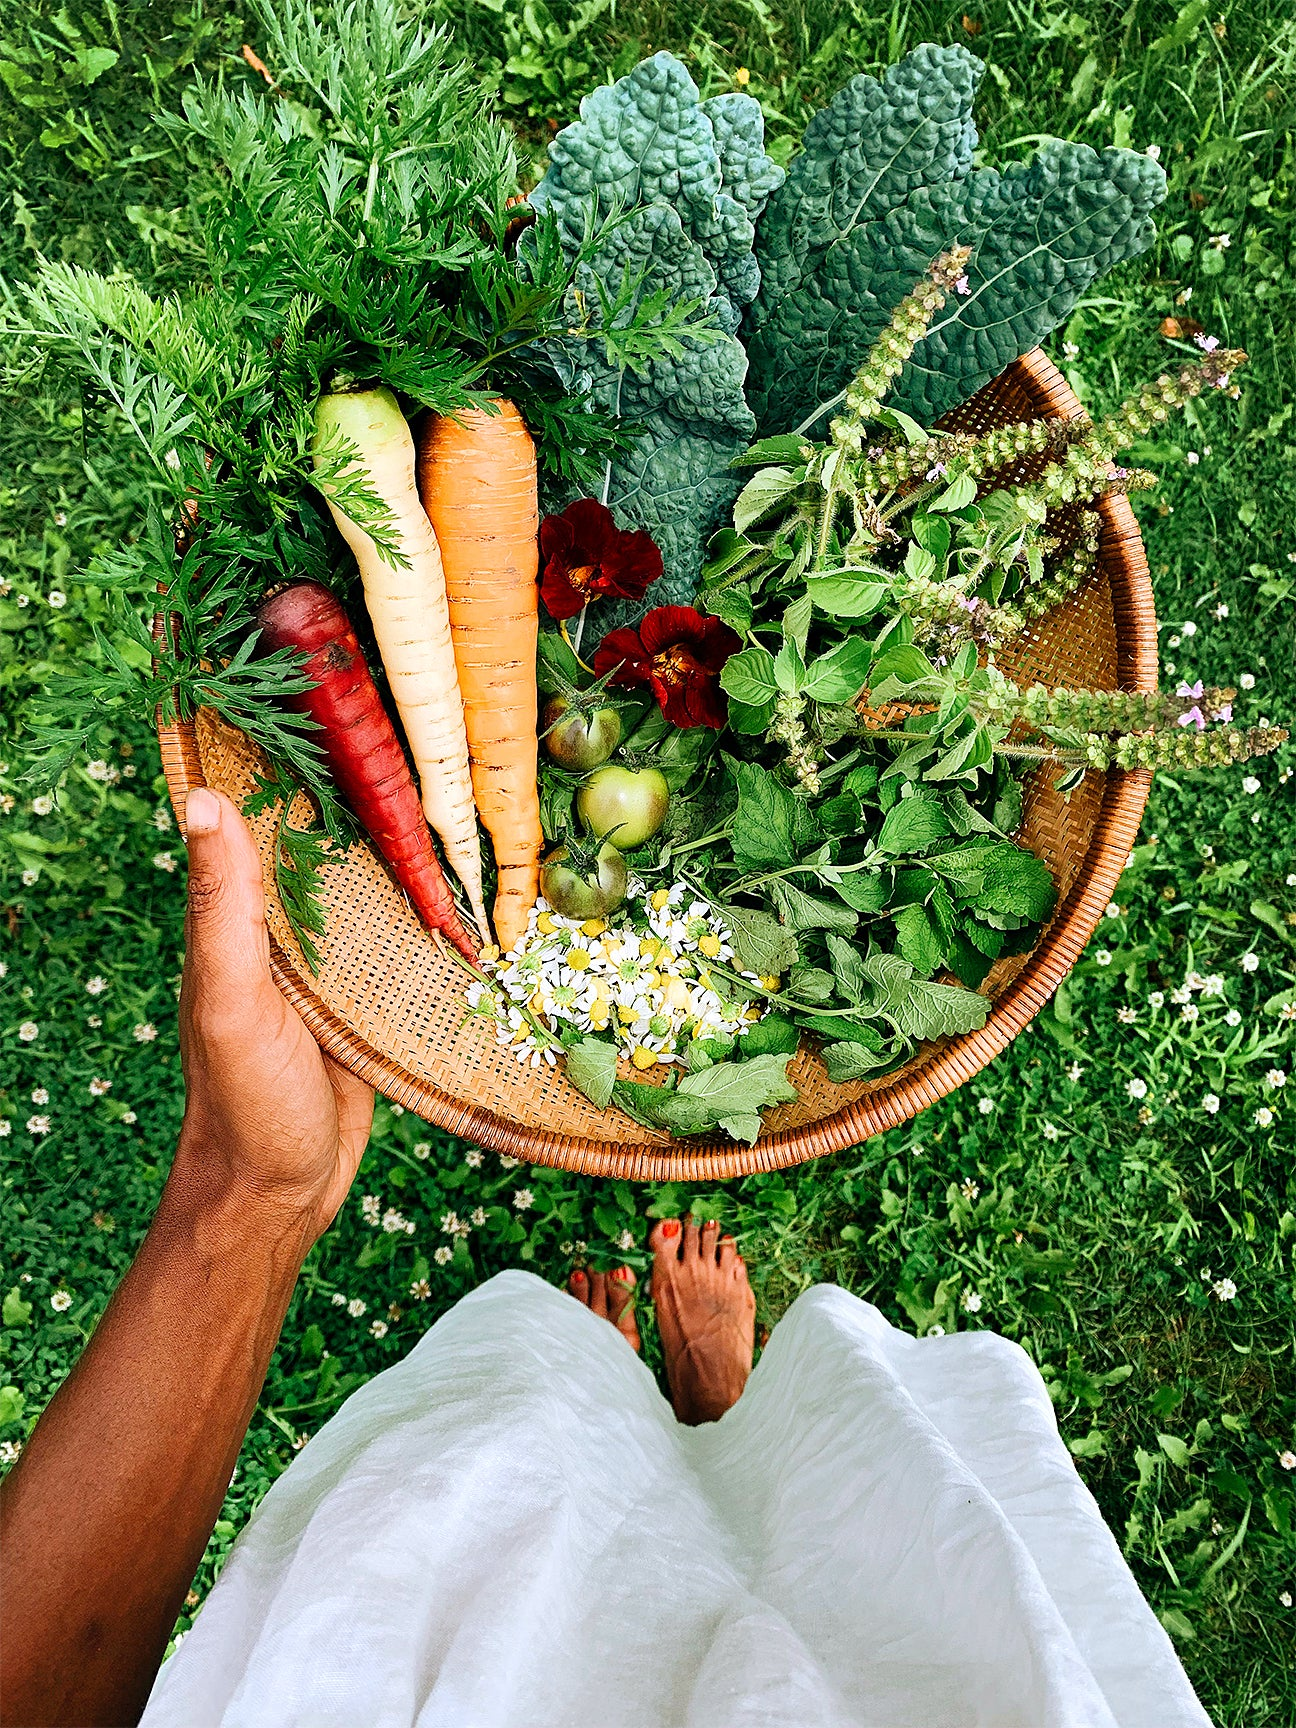 Woman's hand holding a bowl of freshly picked carrots and herbs